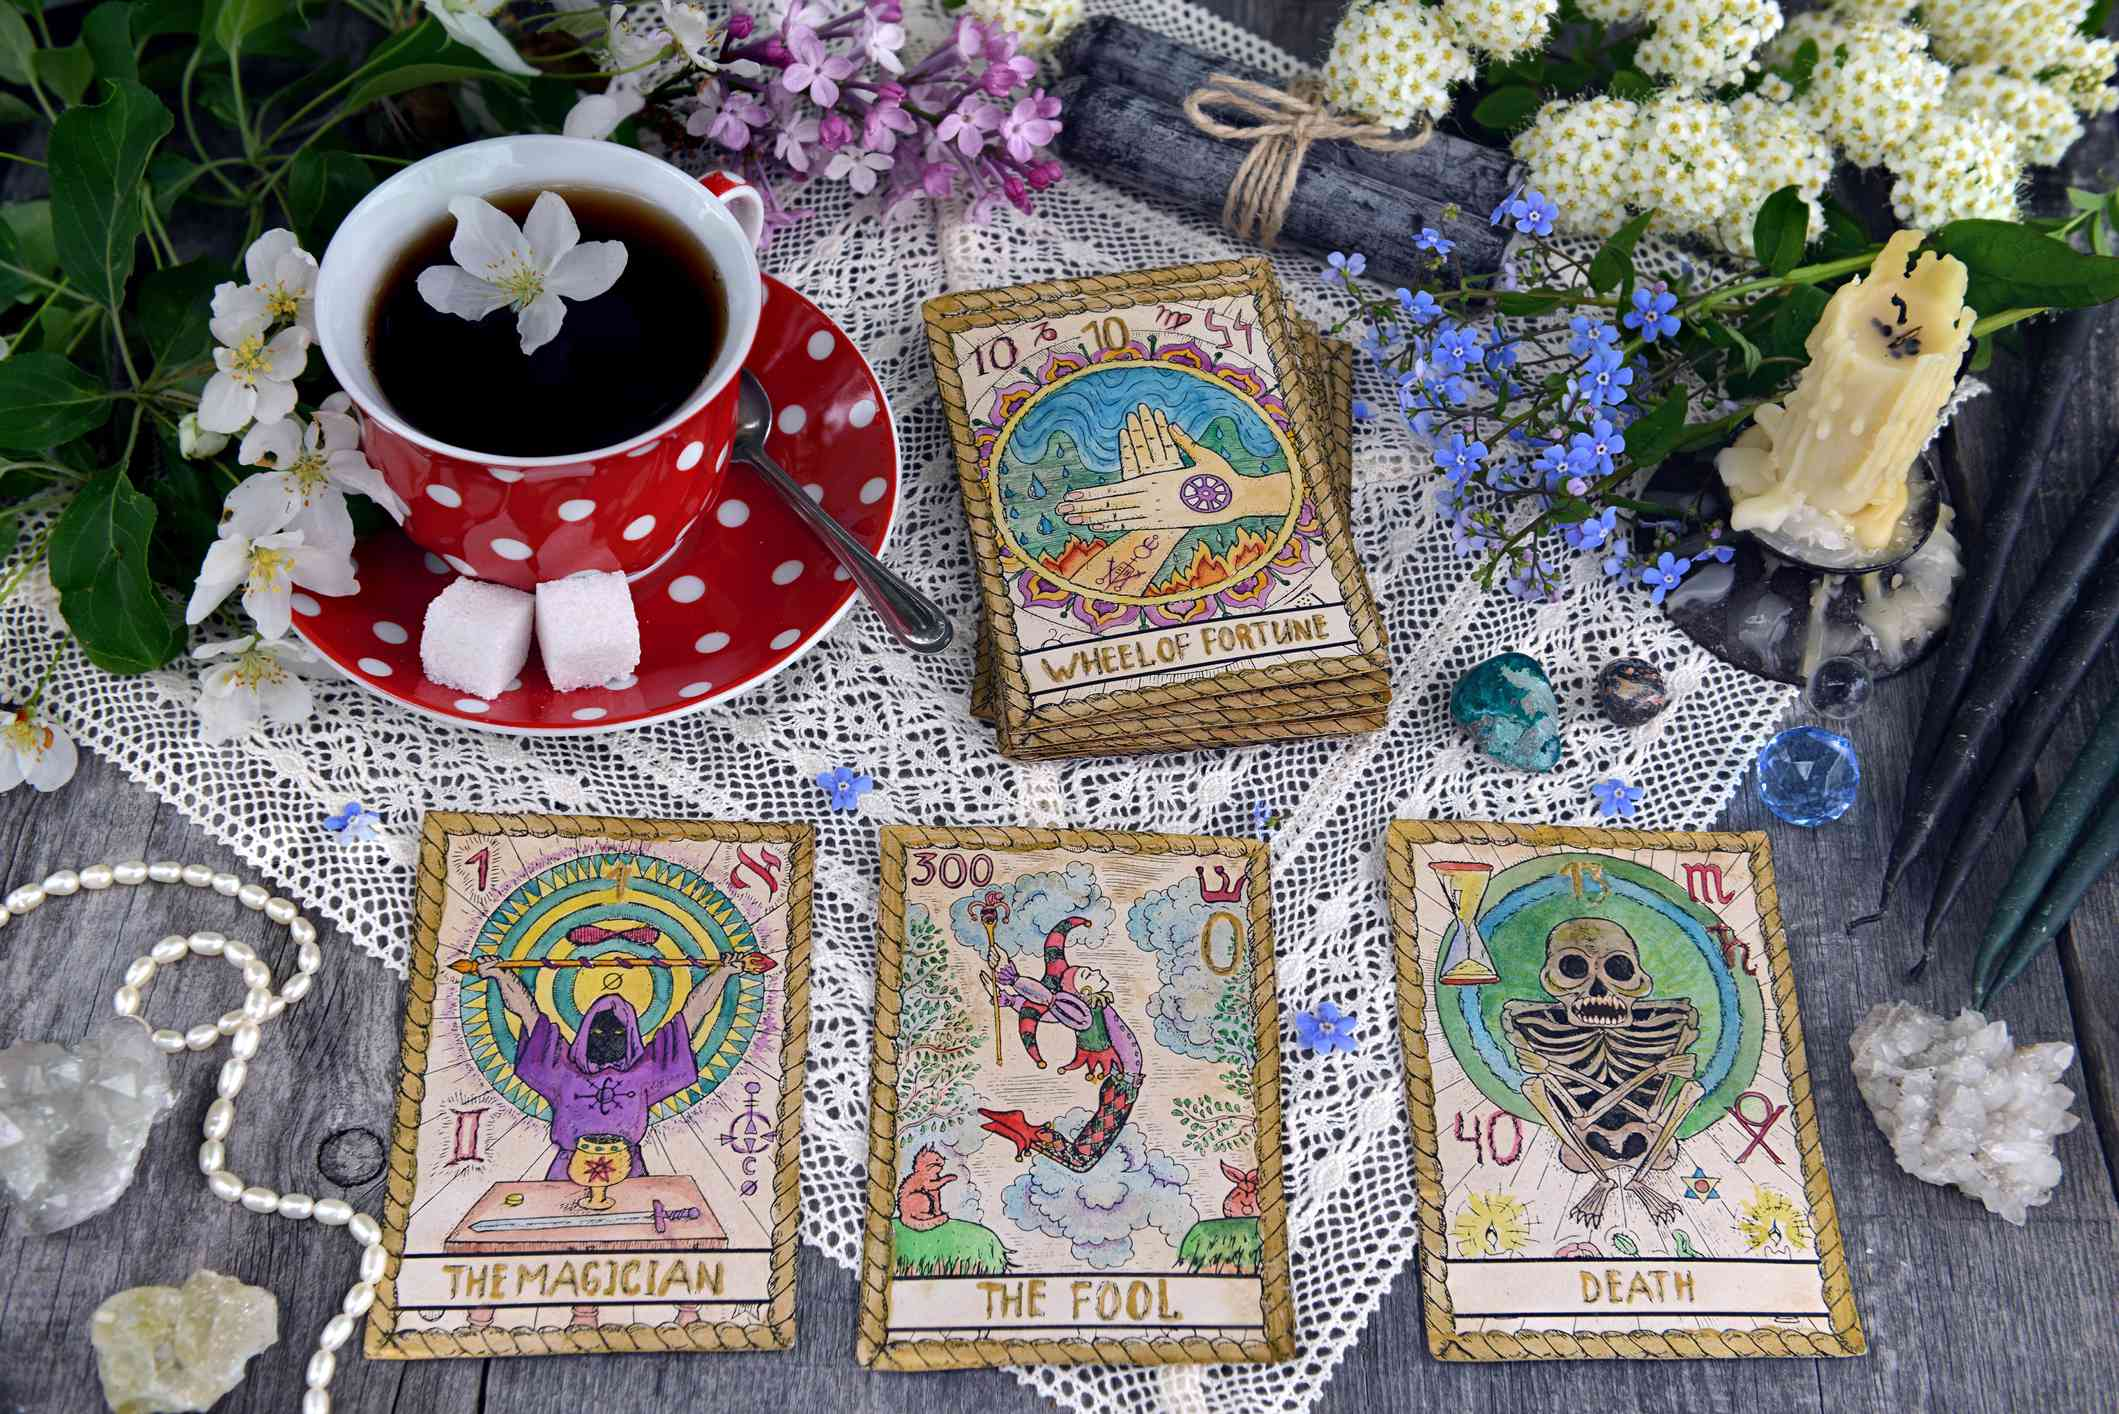 Tarot cards surrounded by fresh flowers, a cup of tea